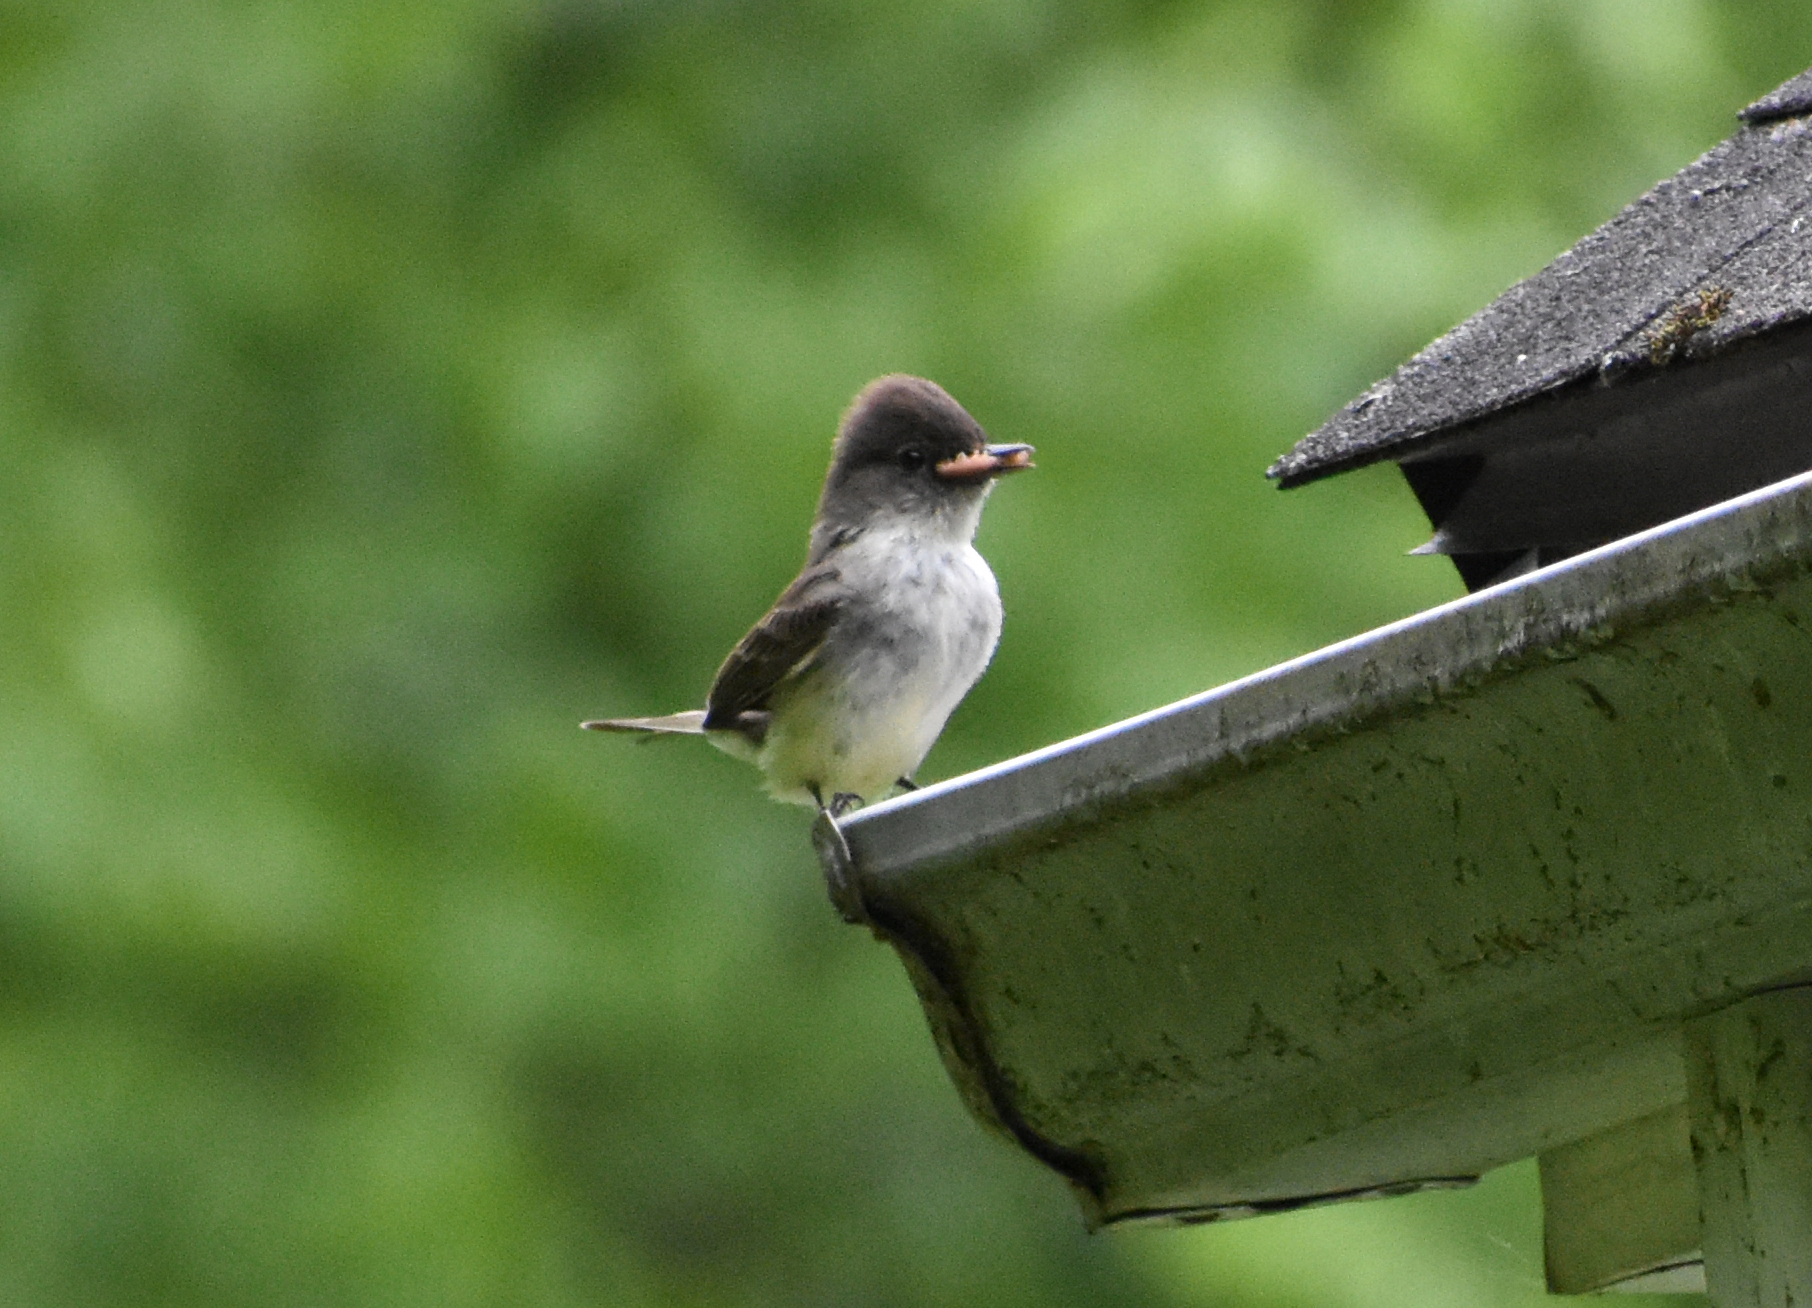 Eastern Phoebe with insect, perched on gutter